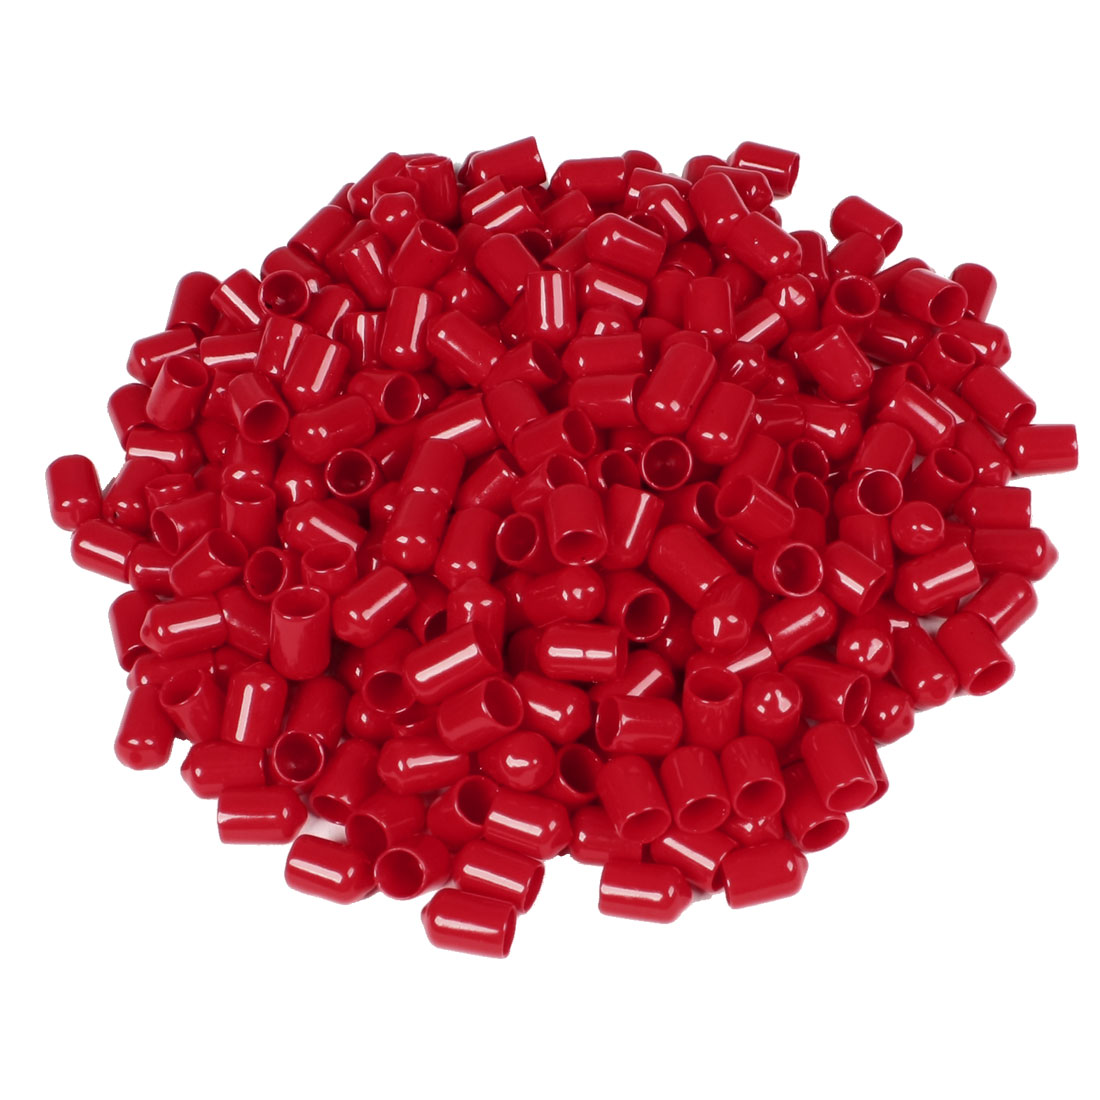 400 Pcs 16mm Height 10mm Inner Dia Round Tip Red PVC Insulated End Caps